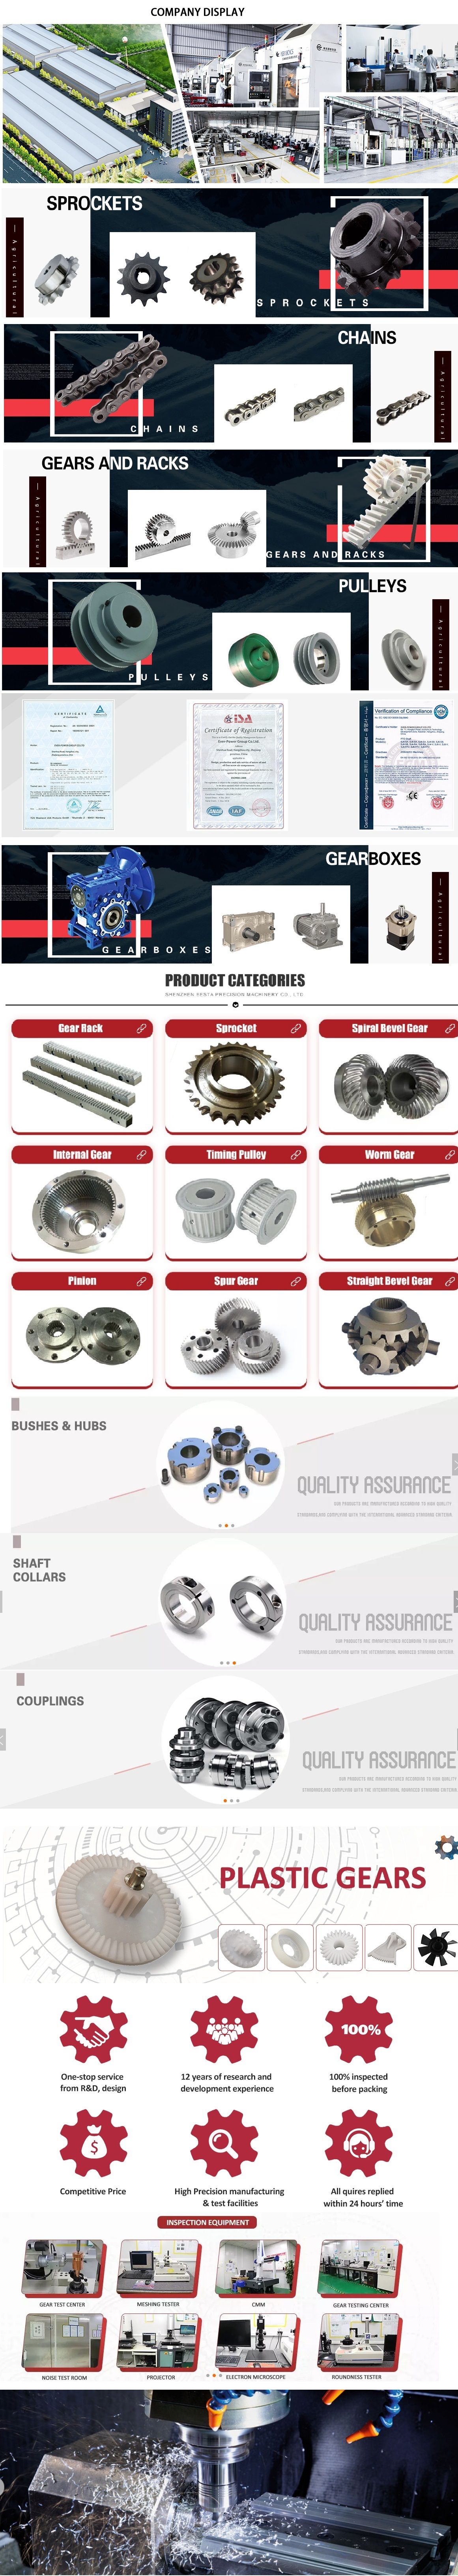 in Ryazan Russian Federation  sales   price   shop   near me   near me shop   factory   supplier Spur Gear Plastic Stainless Steel Aluminum Motor Wheel Diameter Bevel Gear DC Shafts Pin Nylon Bore Tooth Brass Steels Shaft Miniature Auto Cylindrical Gear manufacturer   best   Cost   Custom   Cheap   wholesaler